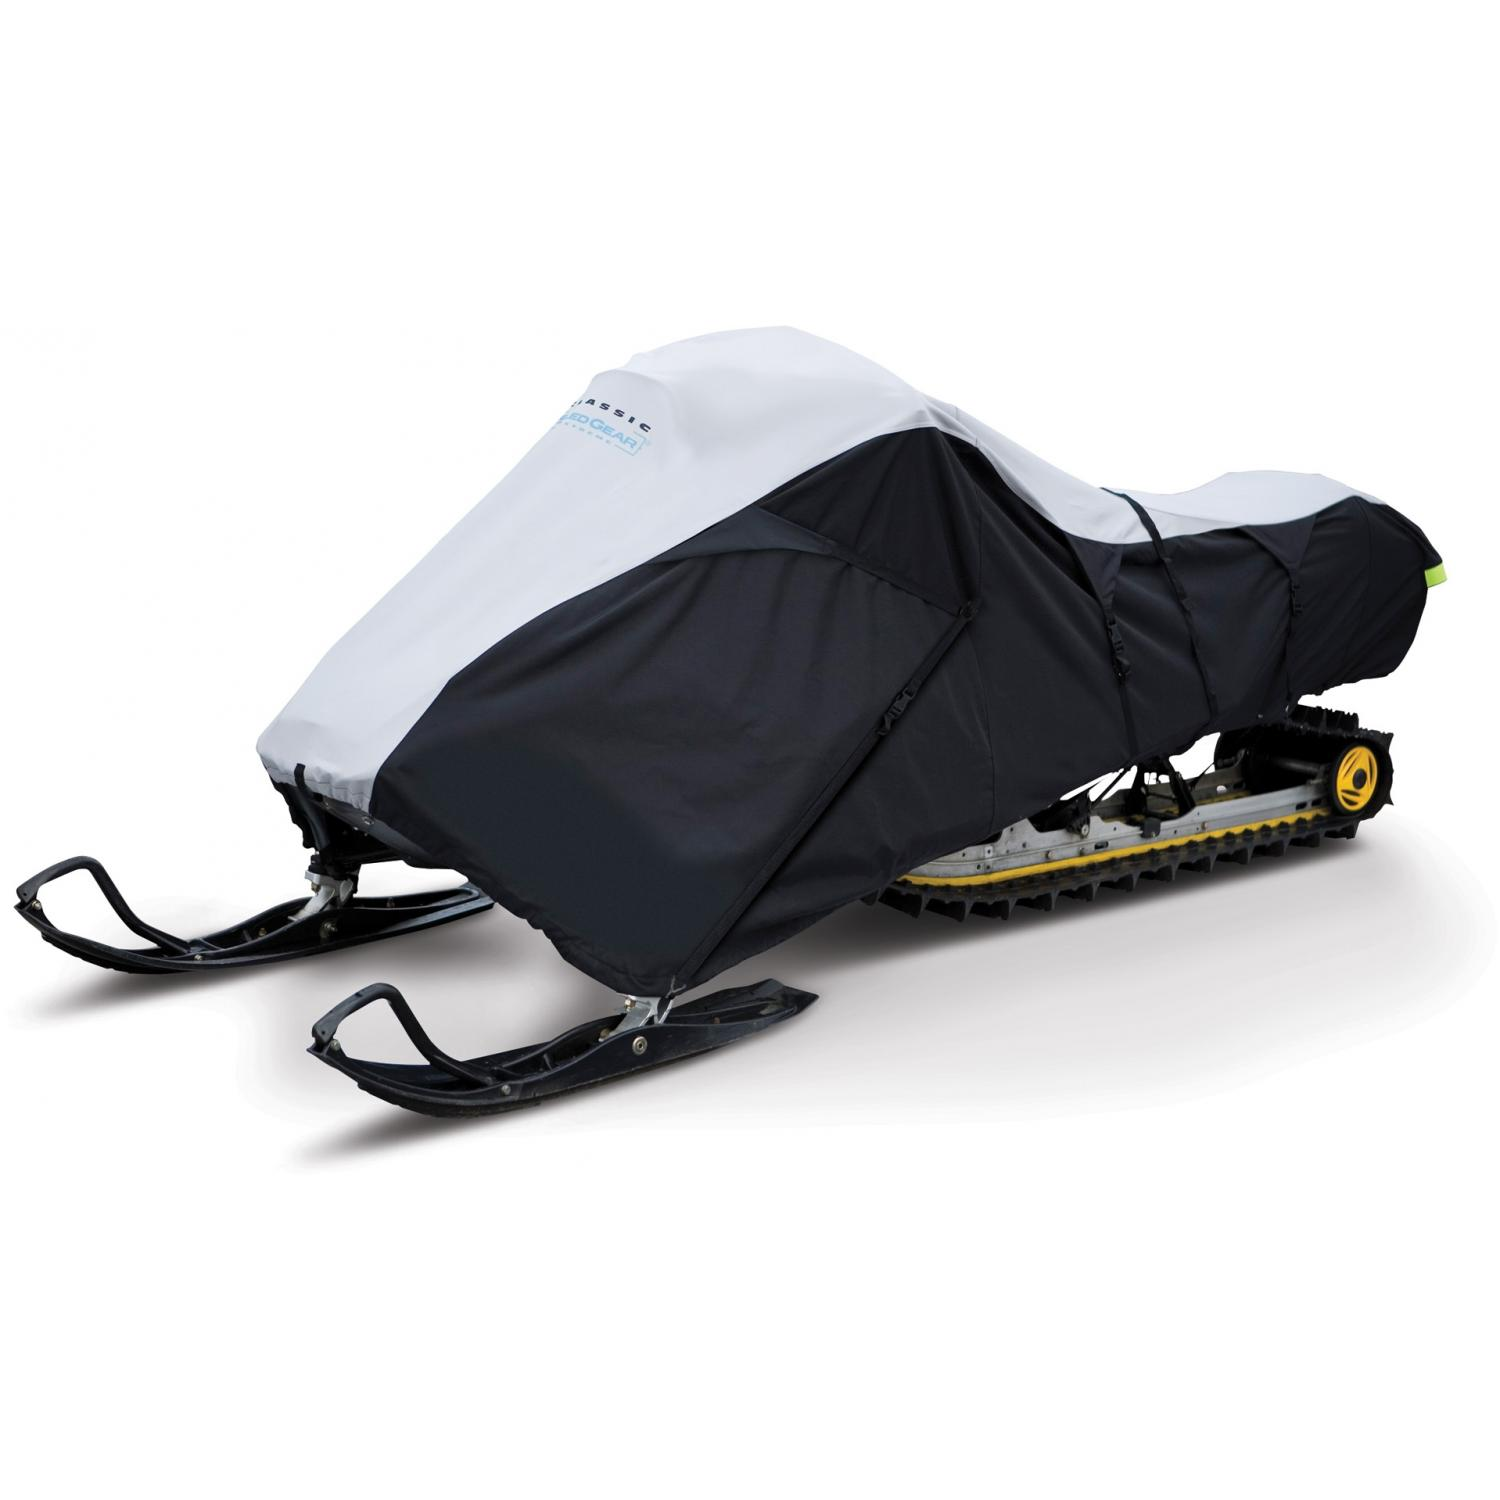 Classic Accessories SledGear Deluxe Snowmobile Travel Cover - Black/Grey - X Large